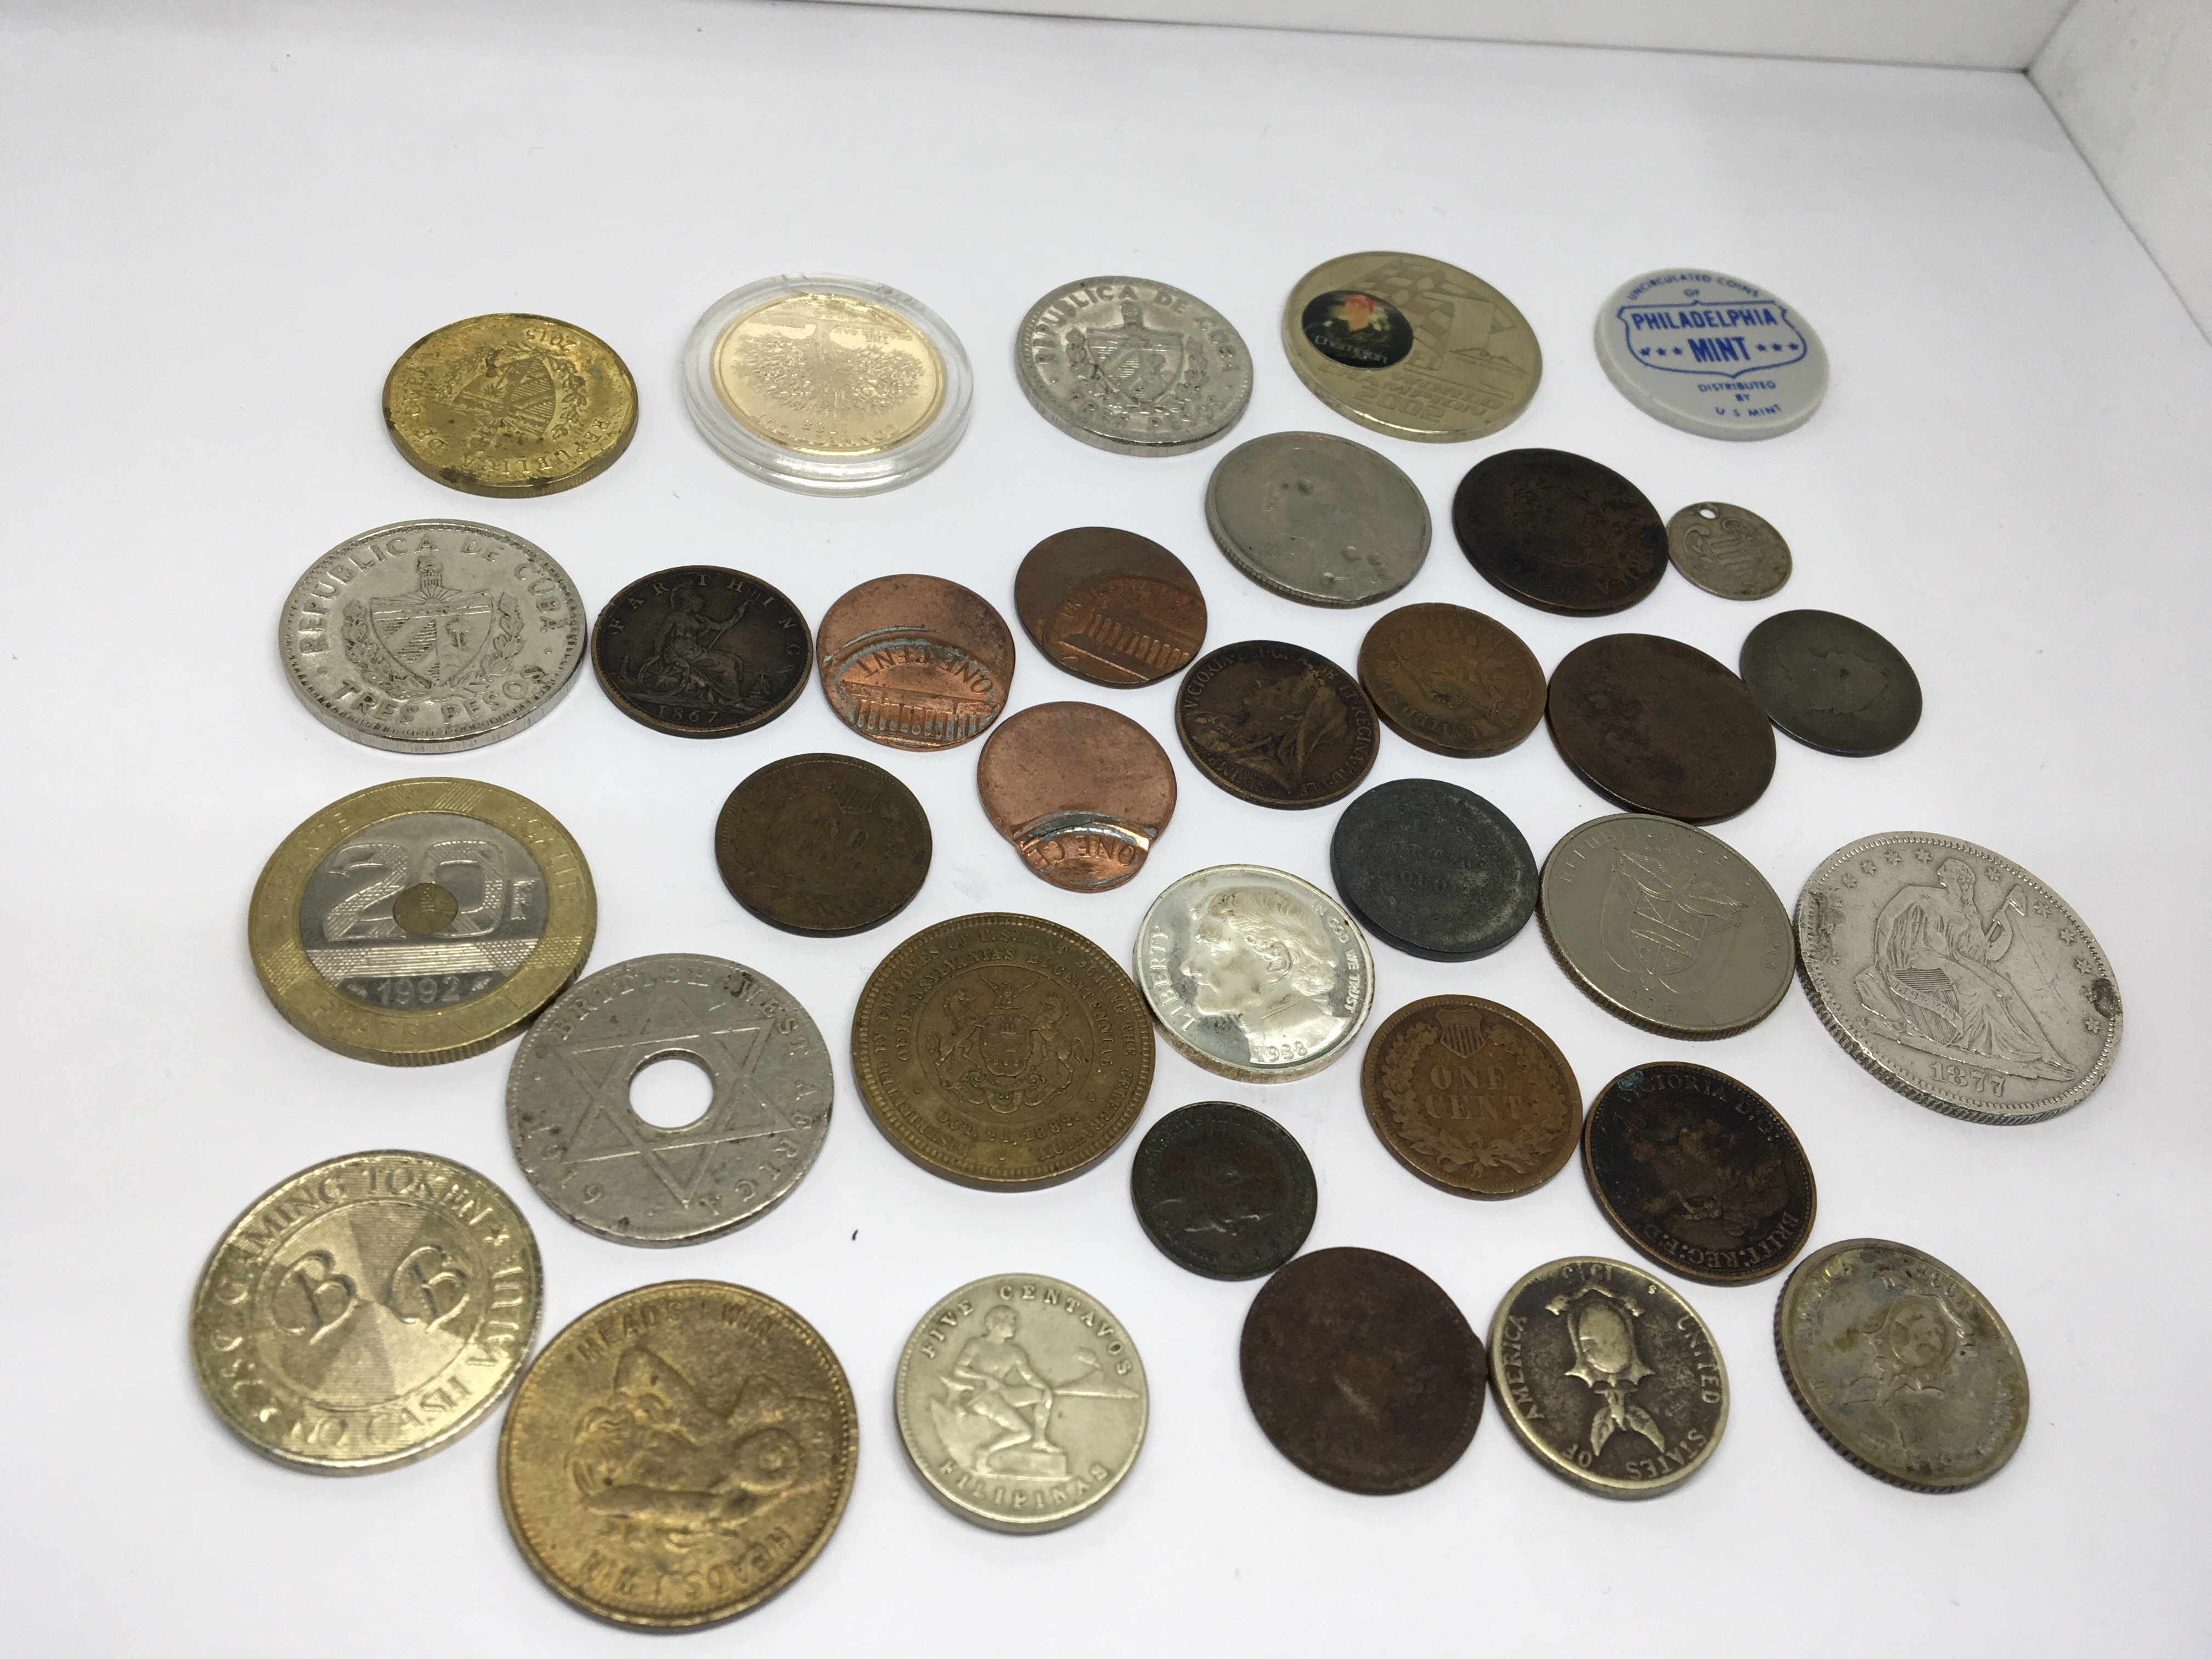 Lot 140 - A collection of world coins including American coi